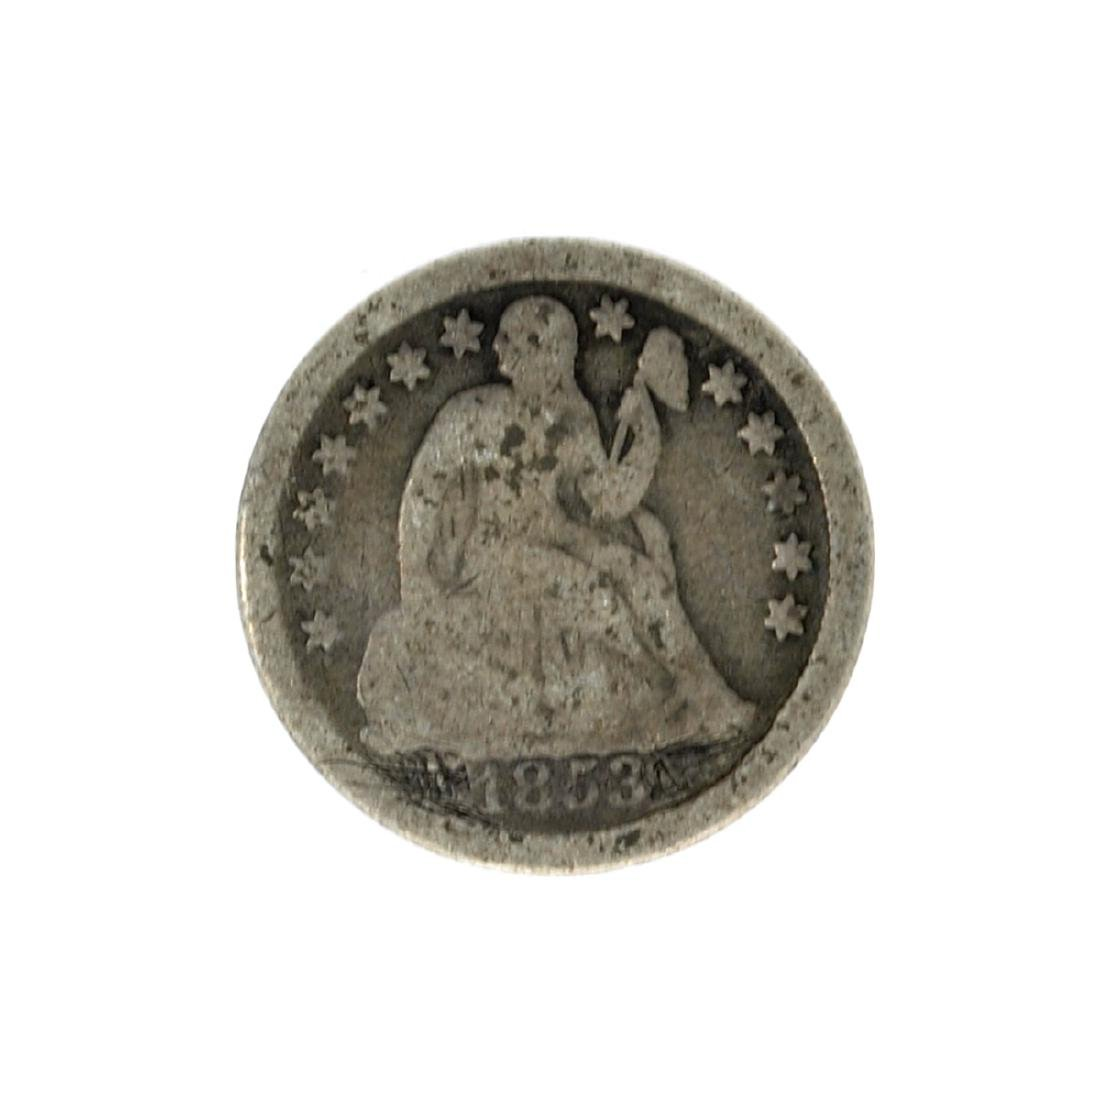 1853 Liberty Seated Dime Coin